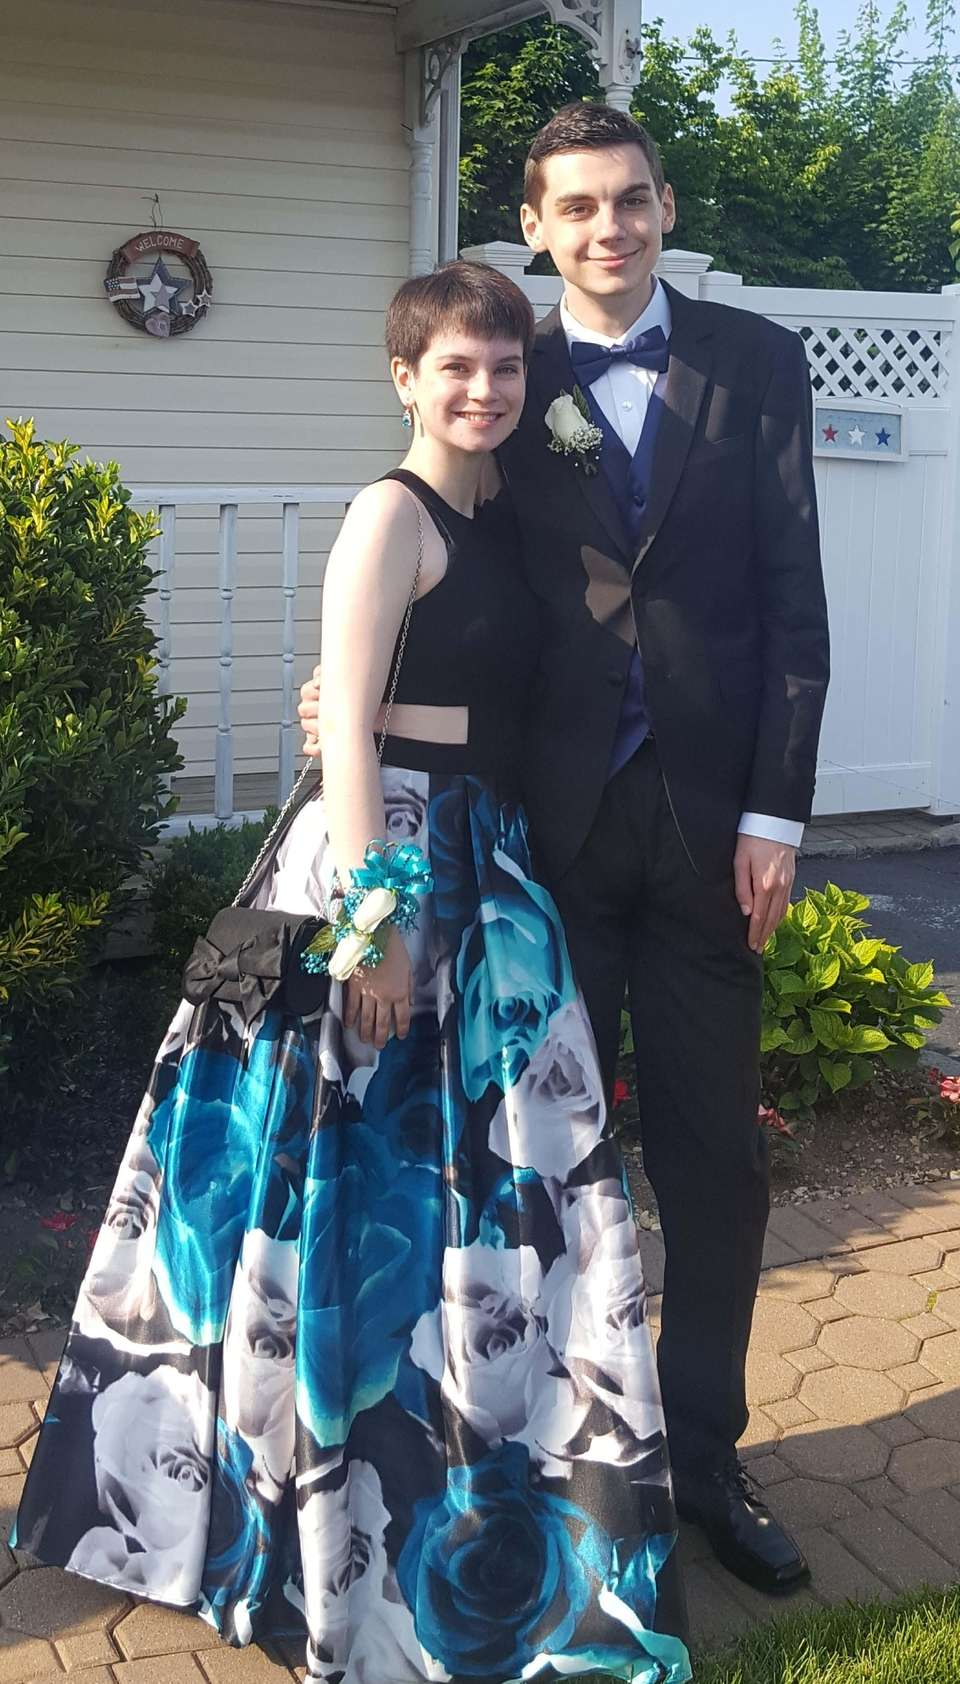 A trendy style seen at multiple proms was